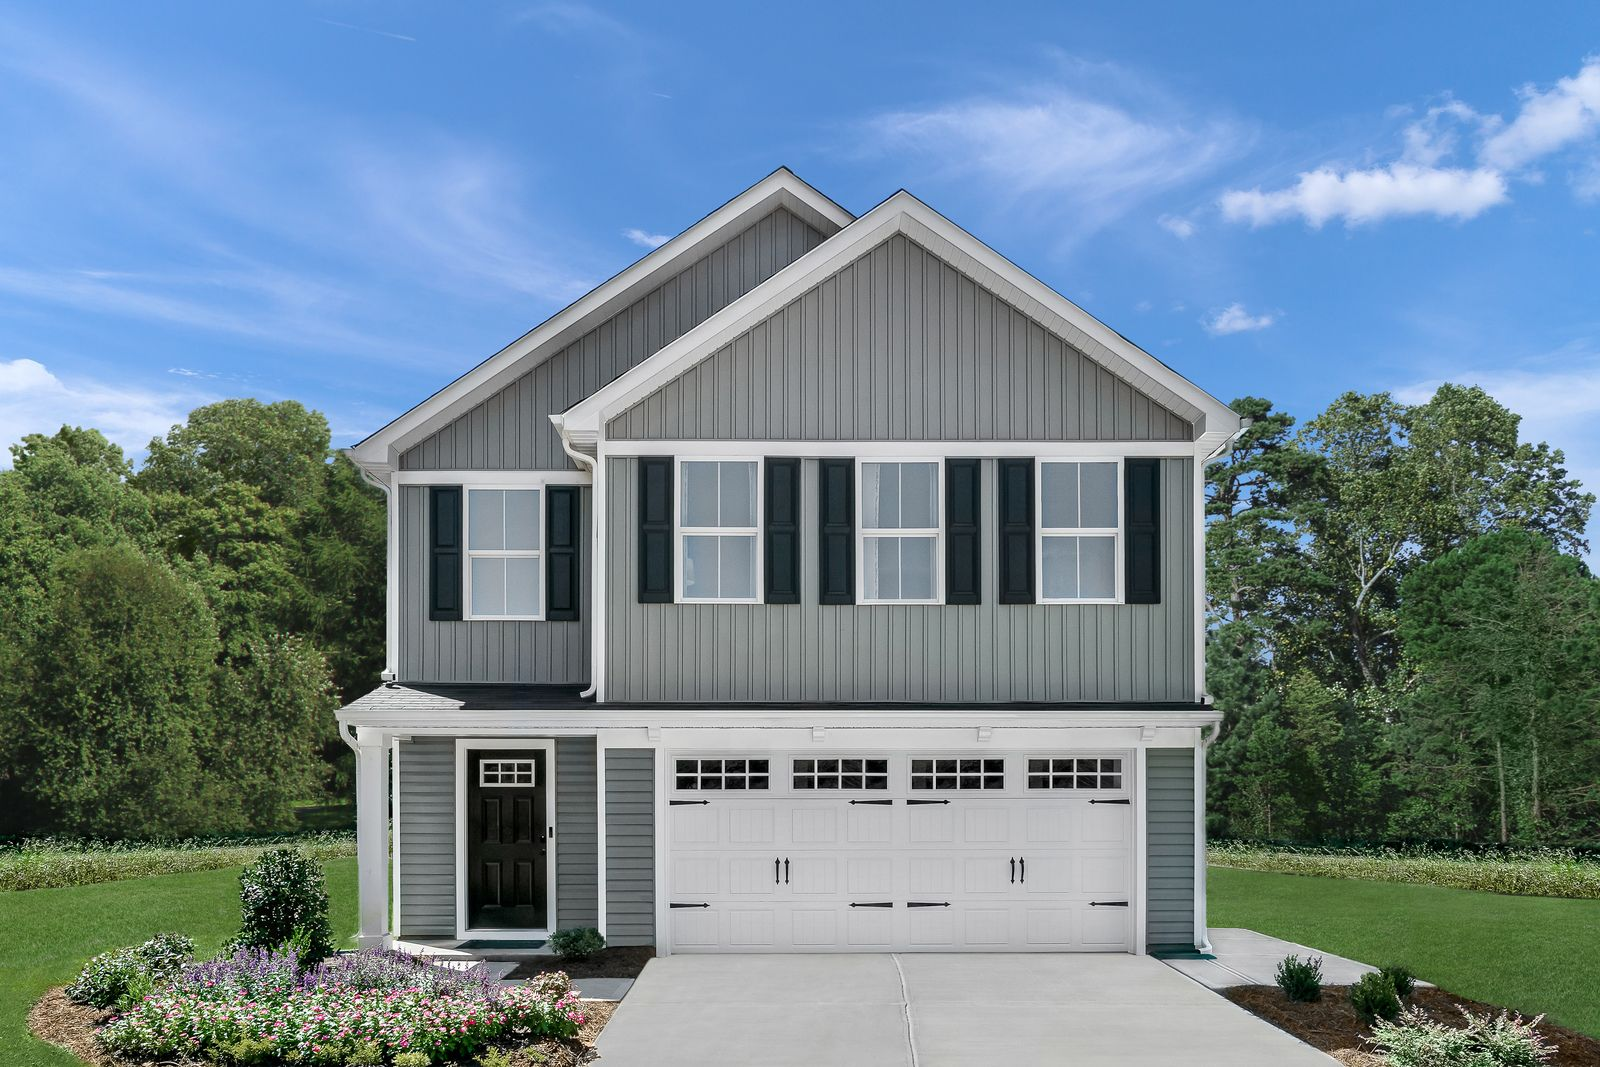 New Single Family Homes Close to Uptown Charlotte